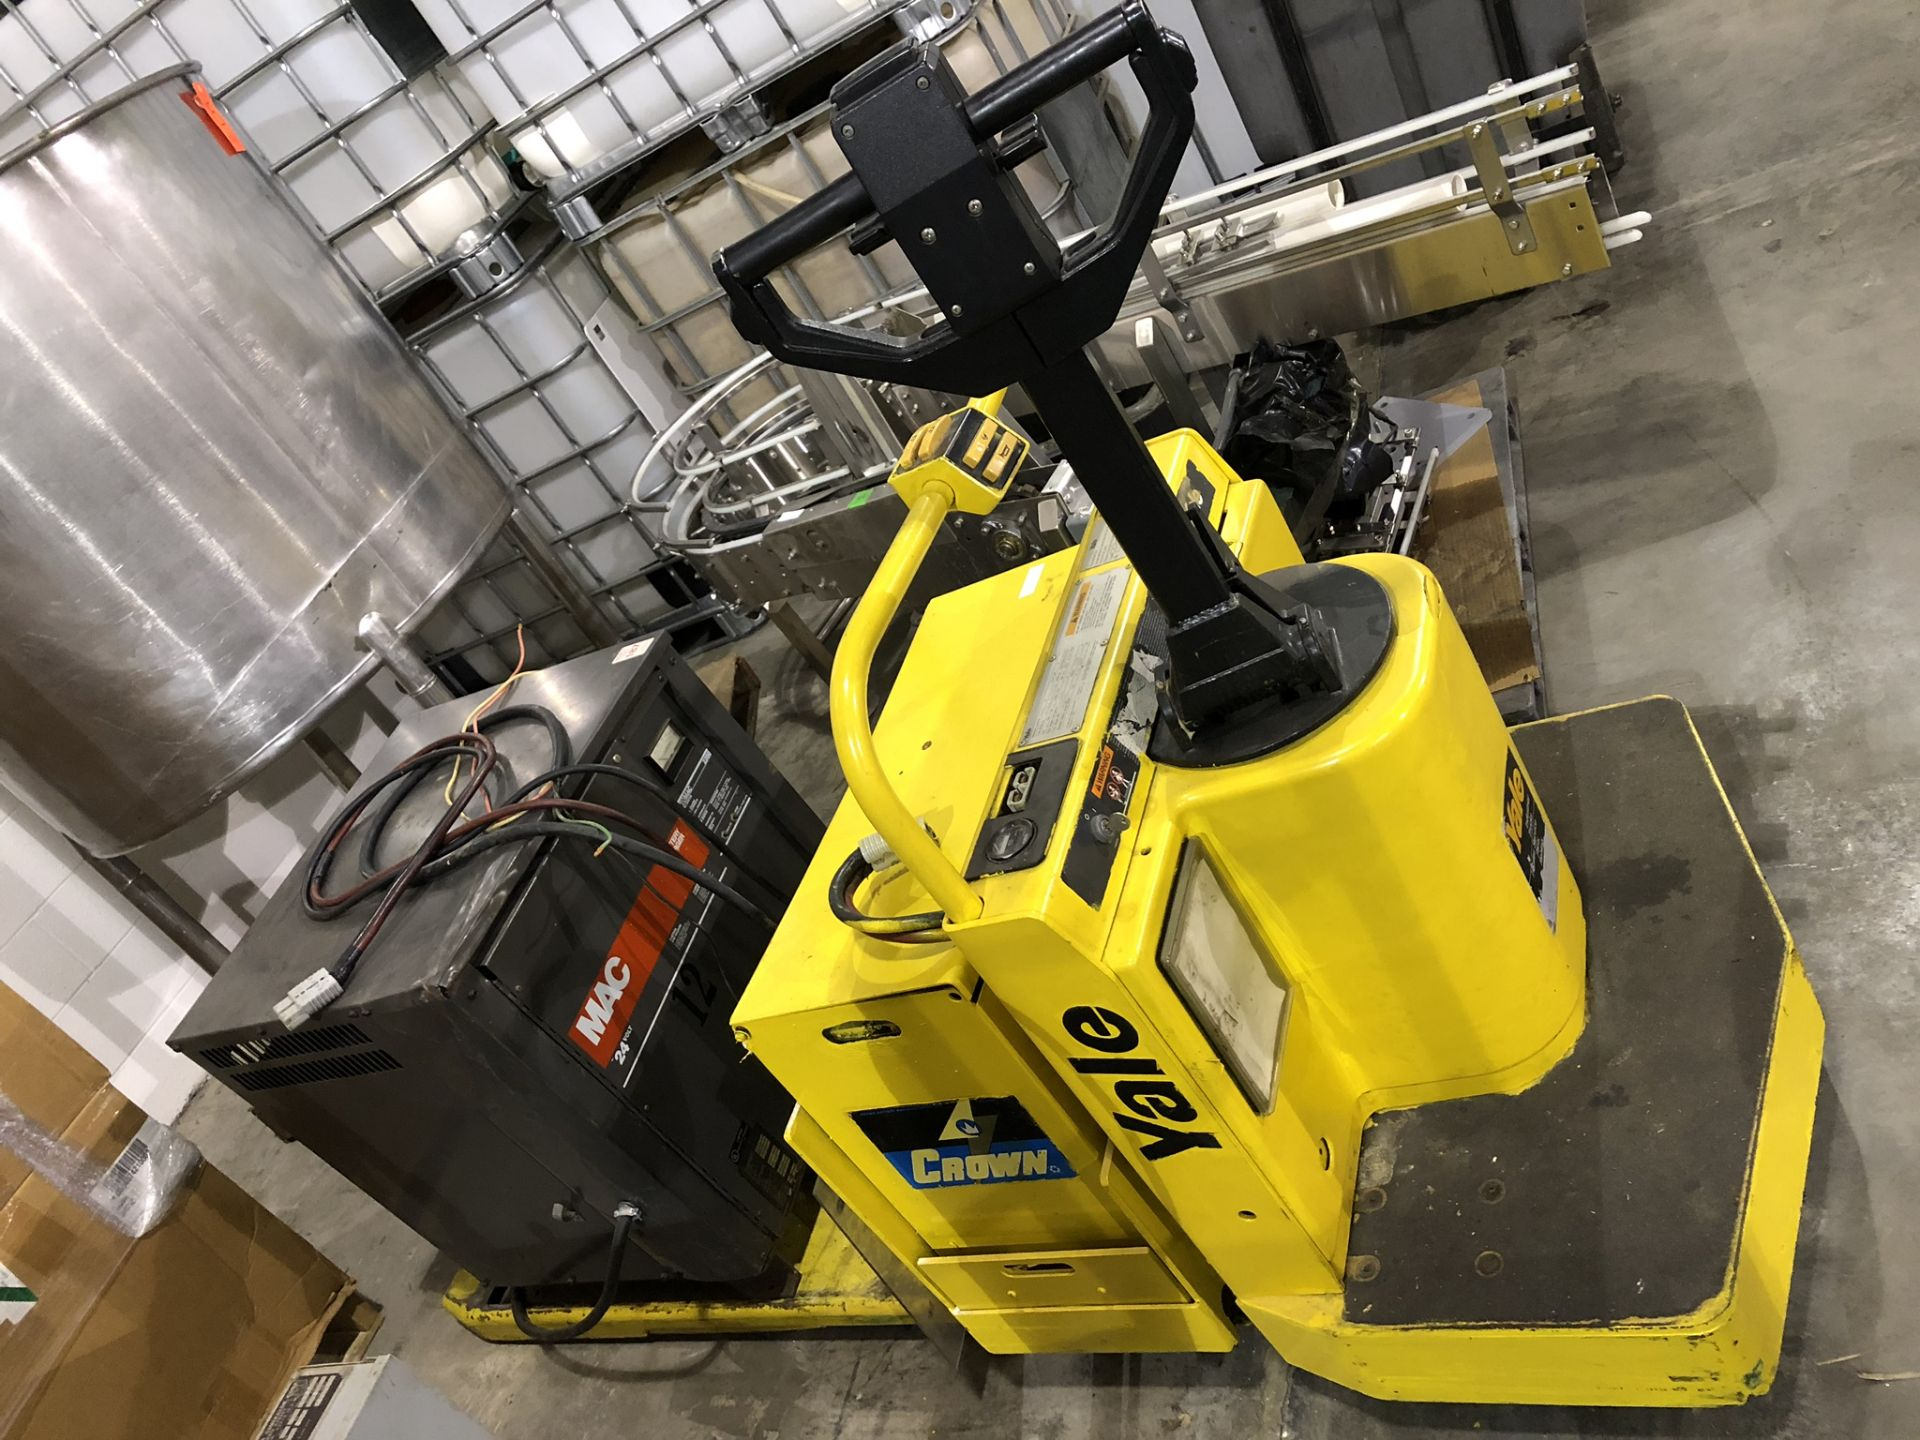 Lot 159 - Walk Behind Pallet Jack